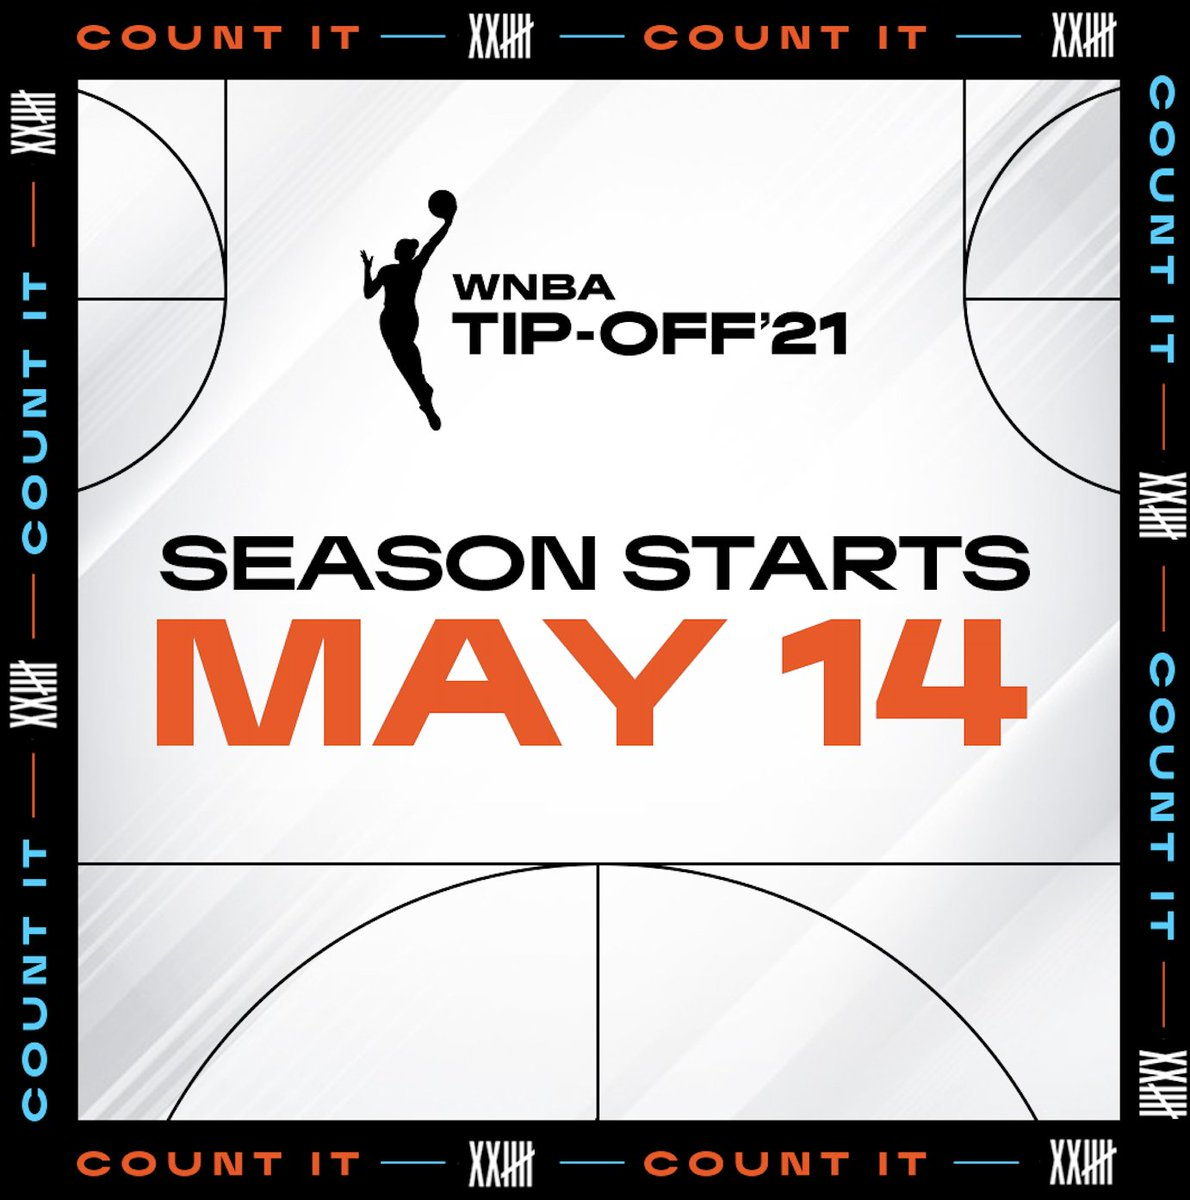 As the health care partner to the @WNBA, we are excited to continue our work together to make an impact in our communities. Make sure to tune in tonight to help us tip off their 25th season! #CountIt #WNBATipOff https://t.co/X4Q5qBMFr9